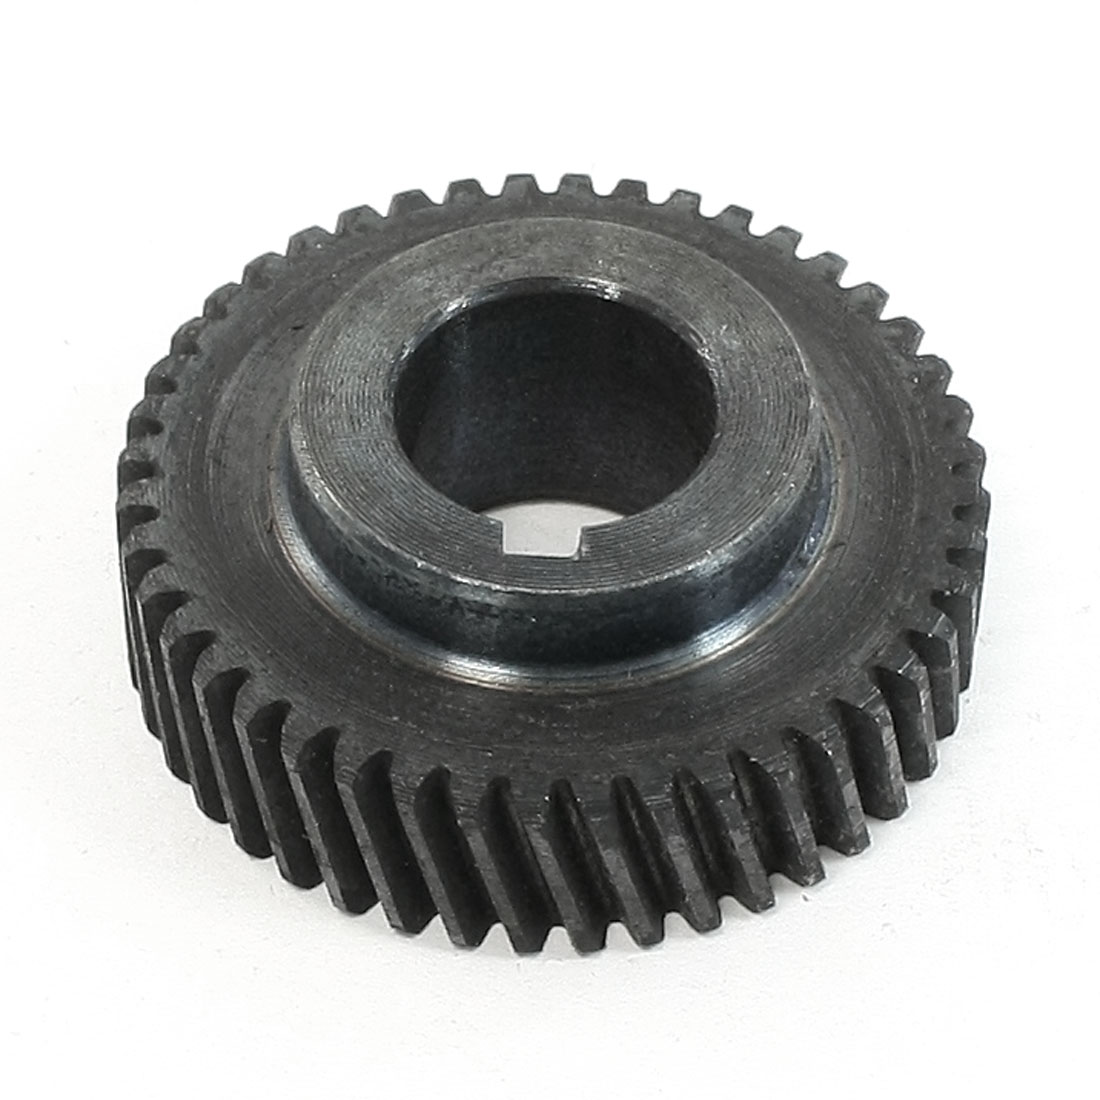 Replacing 49 Teeth Cut Out Design Gear Wheel for Makita 5900 Electric Saw